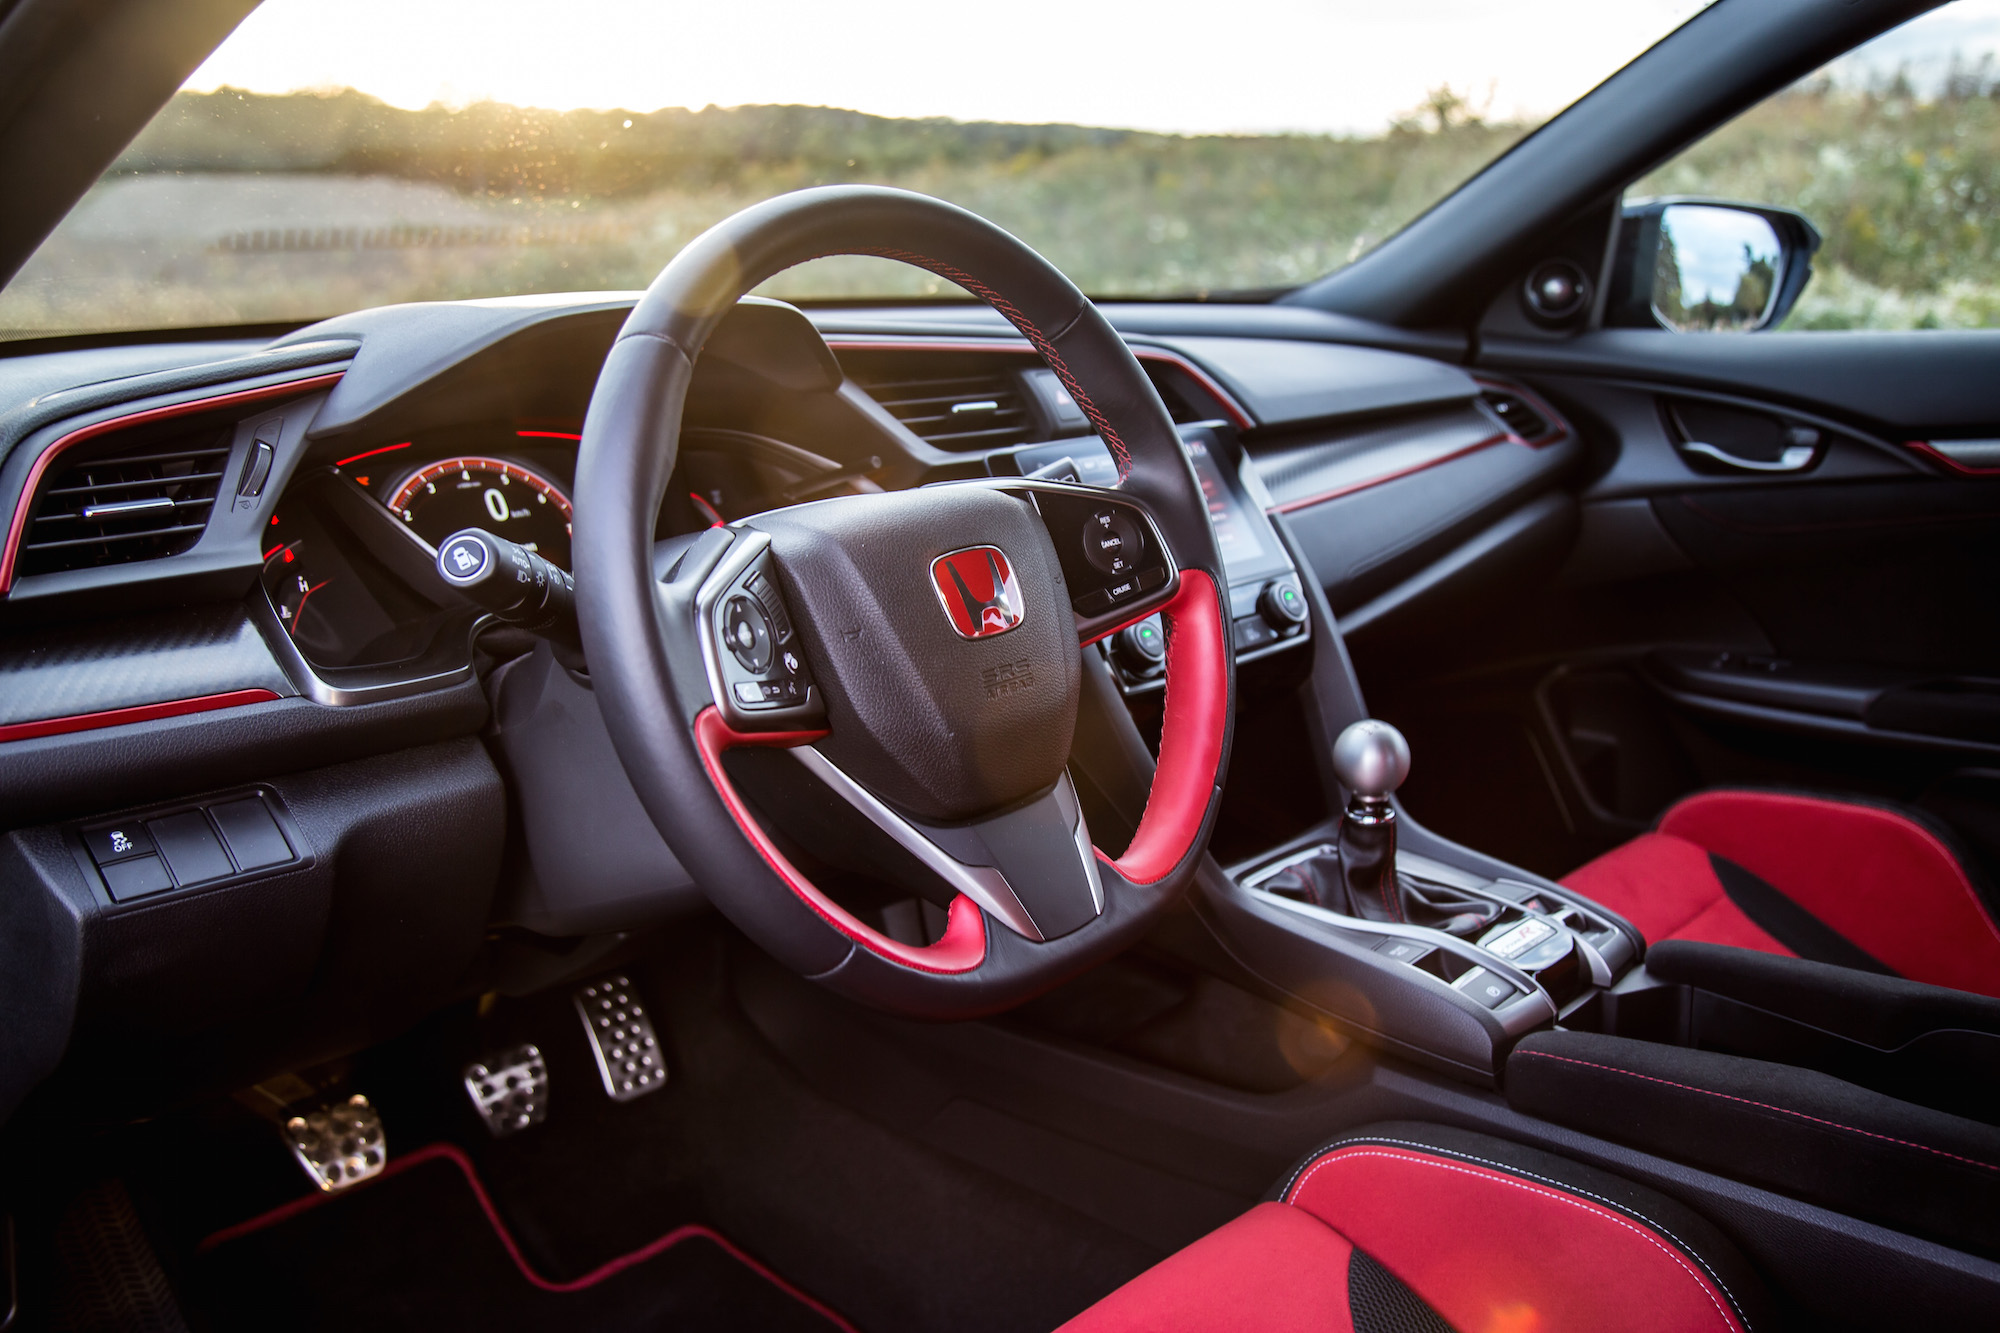 Review 2017 honda civic type r canadian auto review - 2017 honda civic type r interior ...